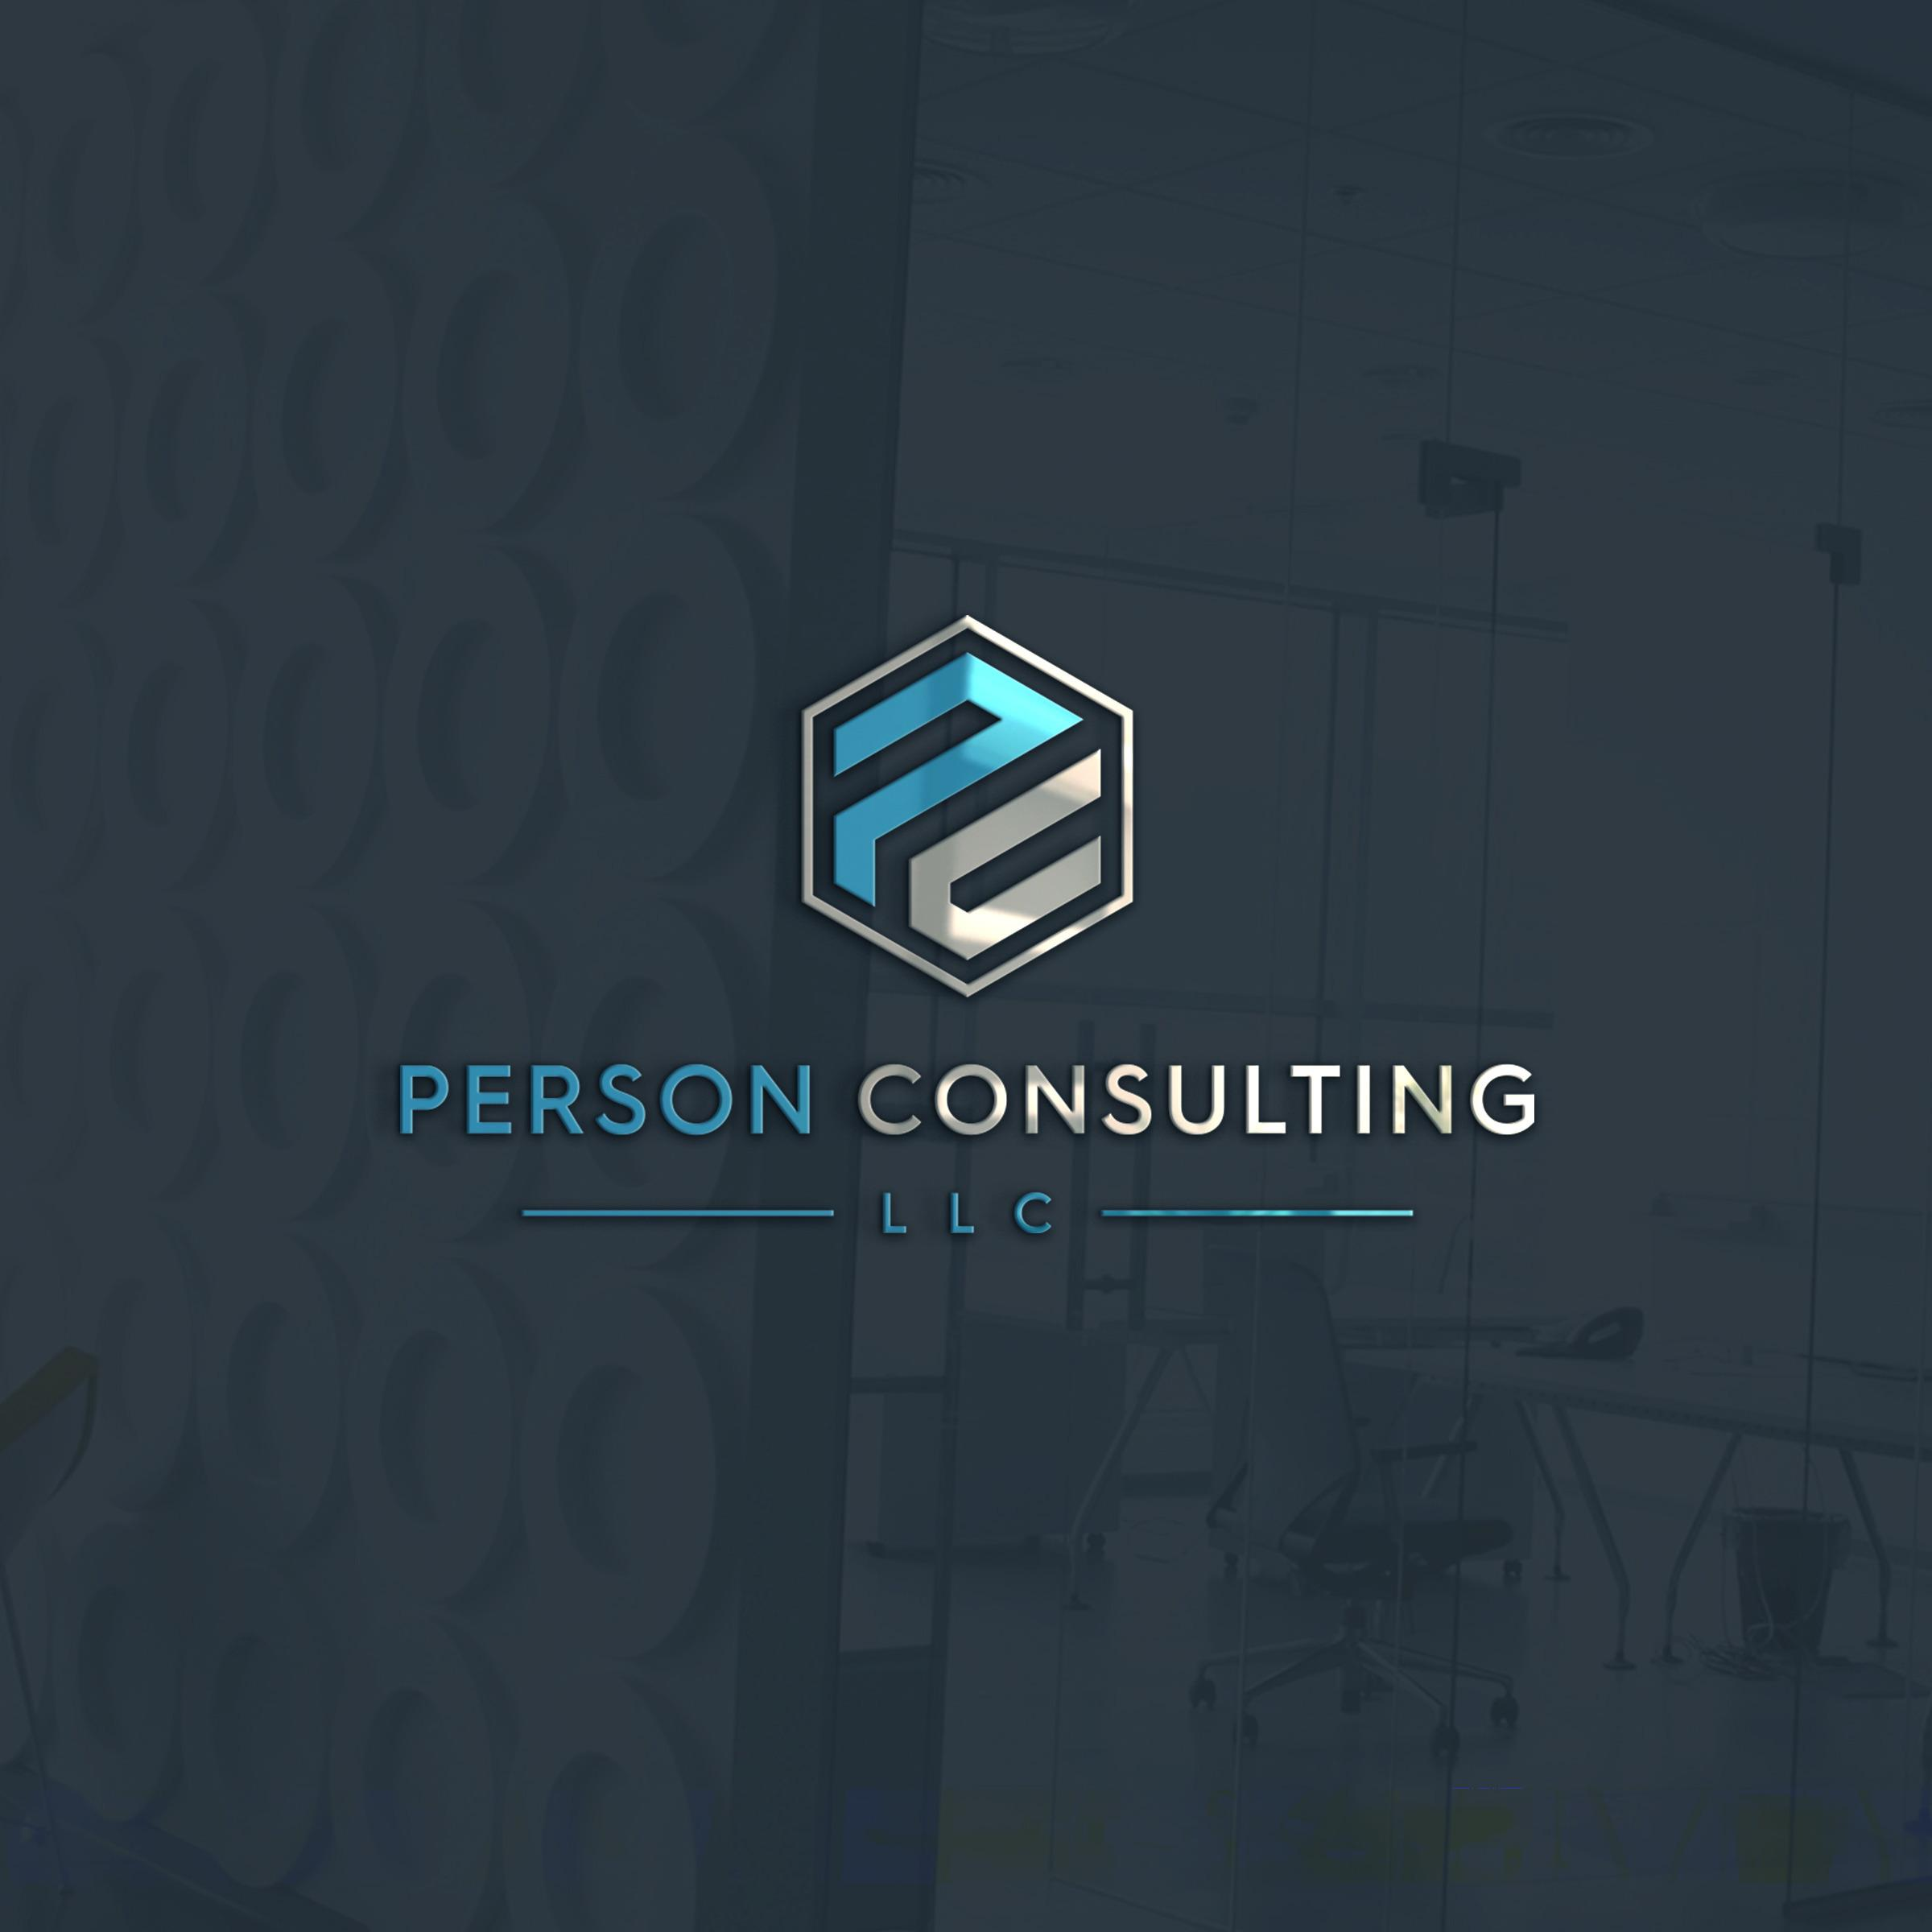 Person Consulting LLC